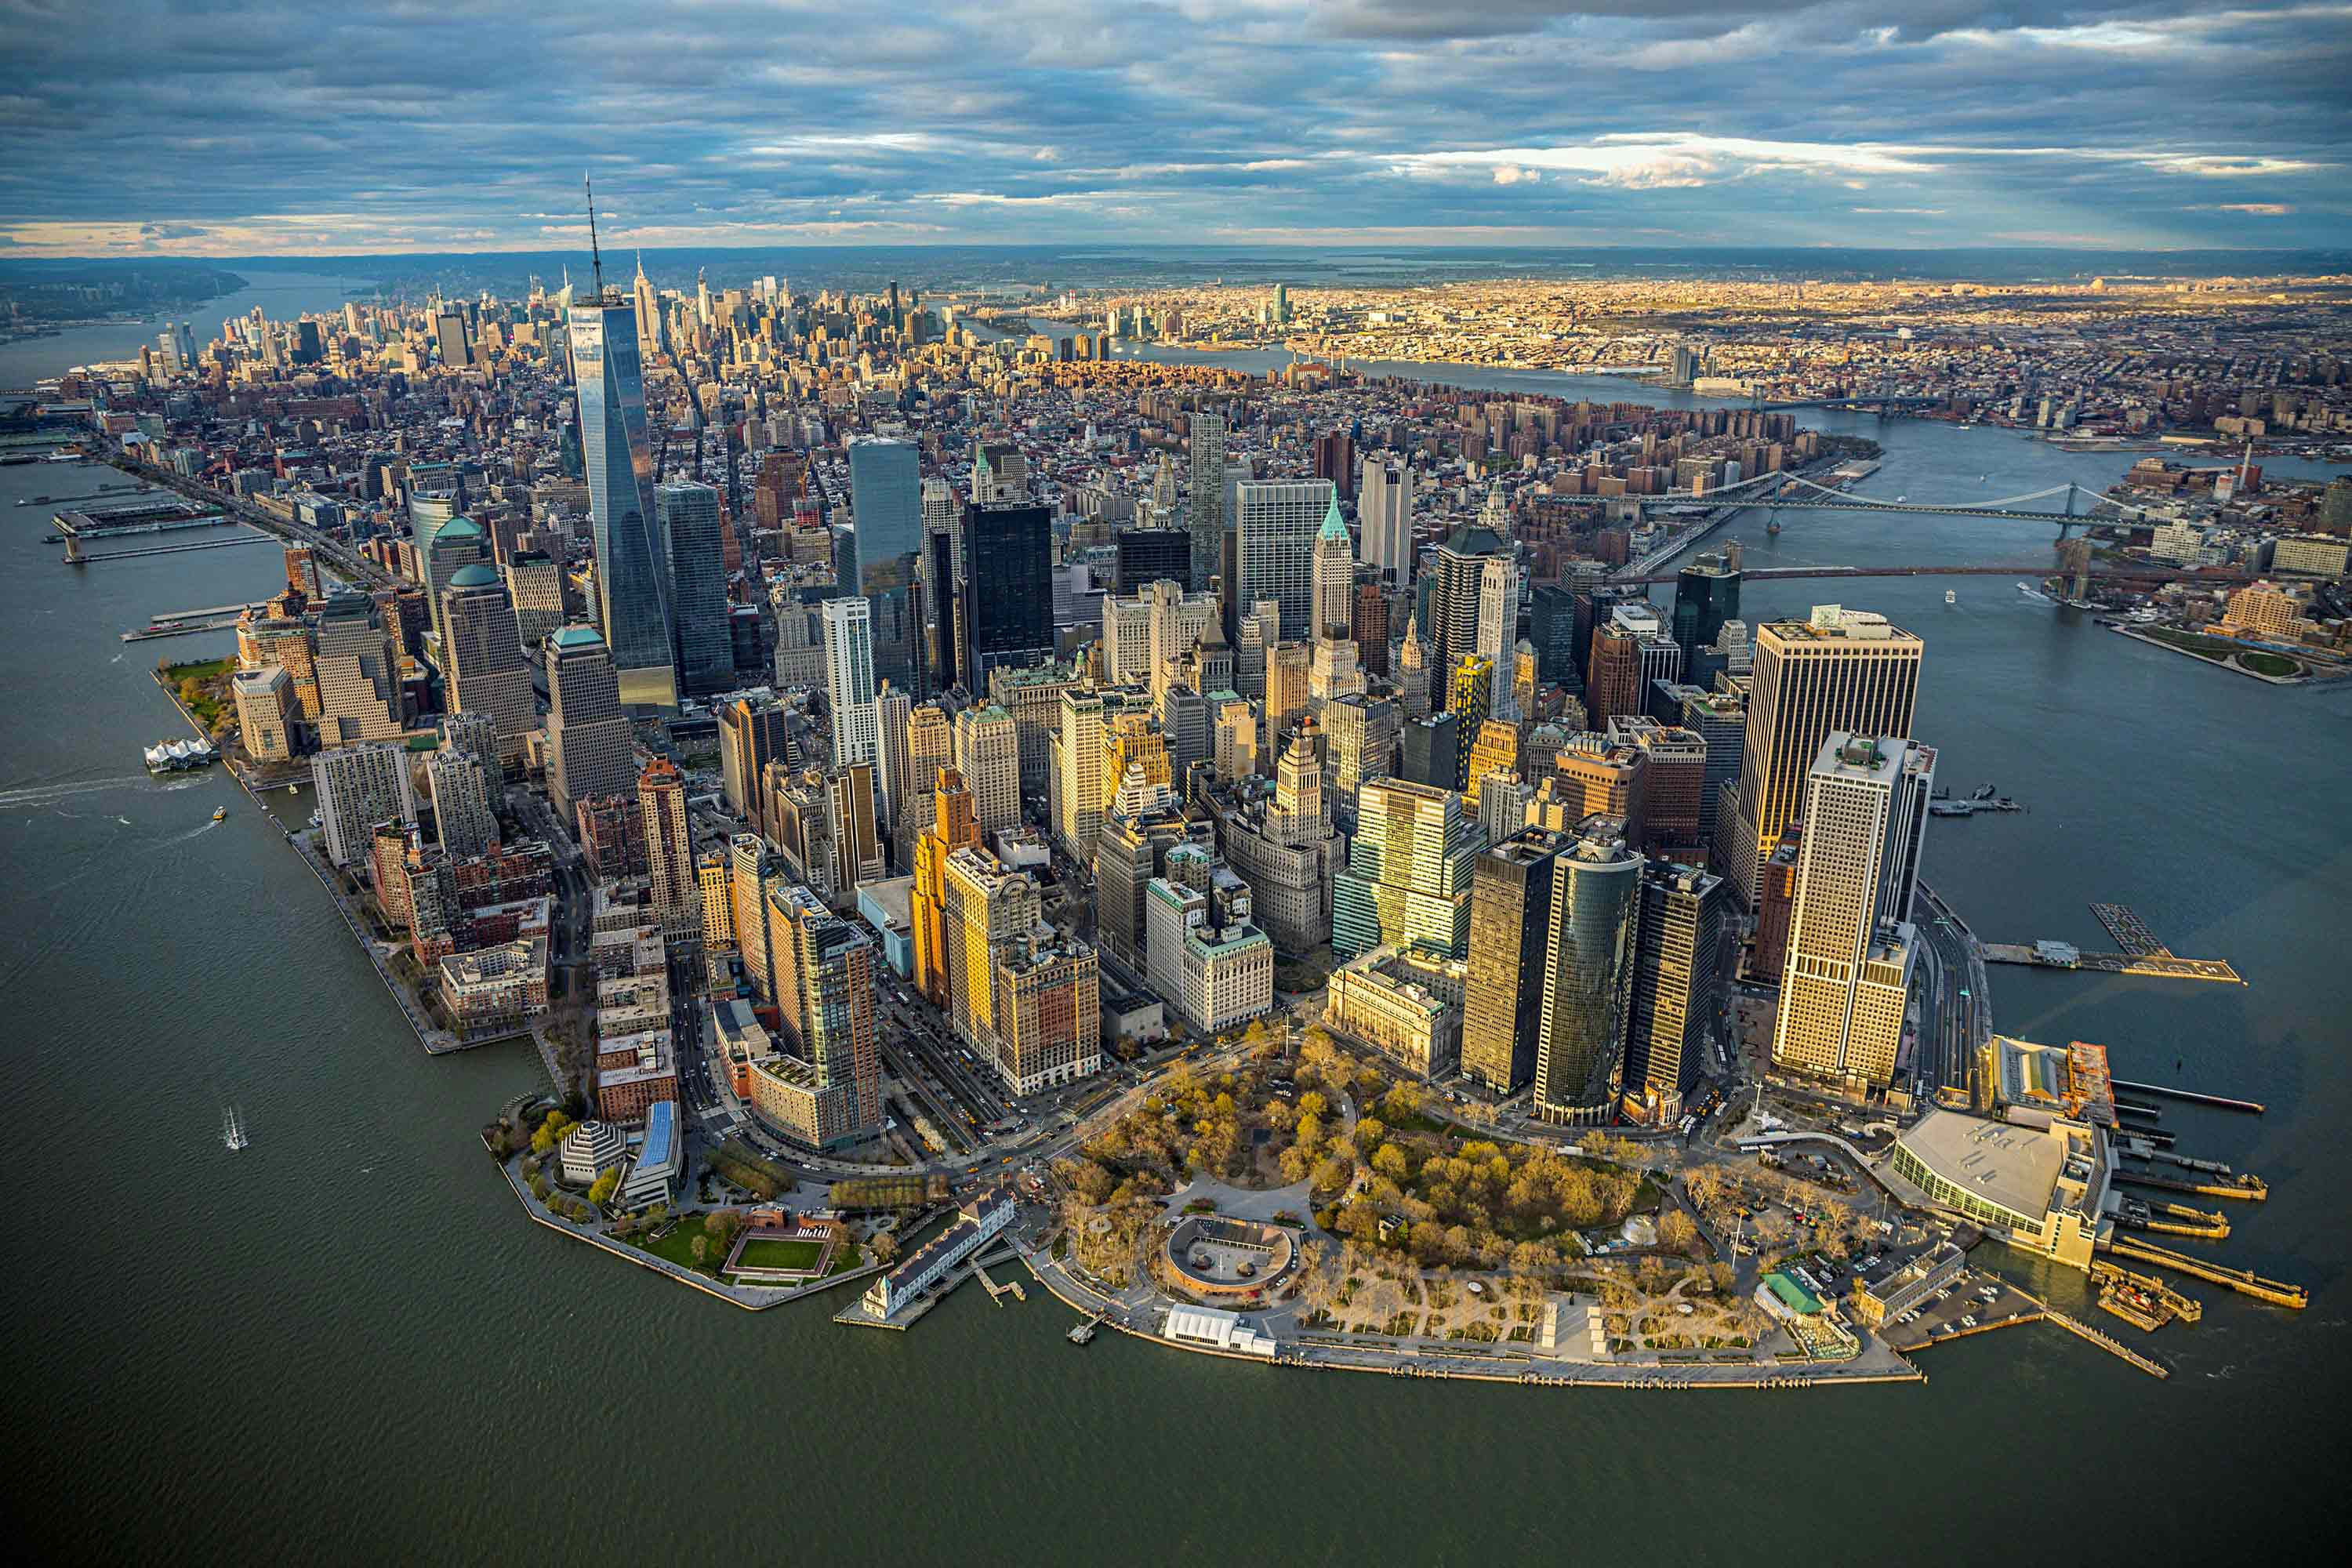 vue panoramique sur New York